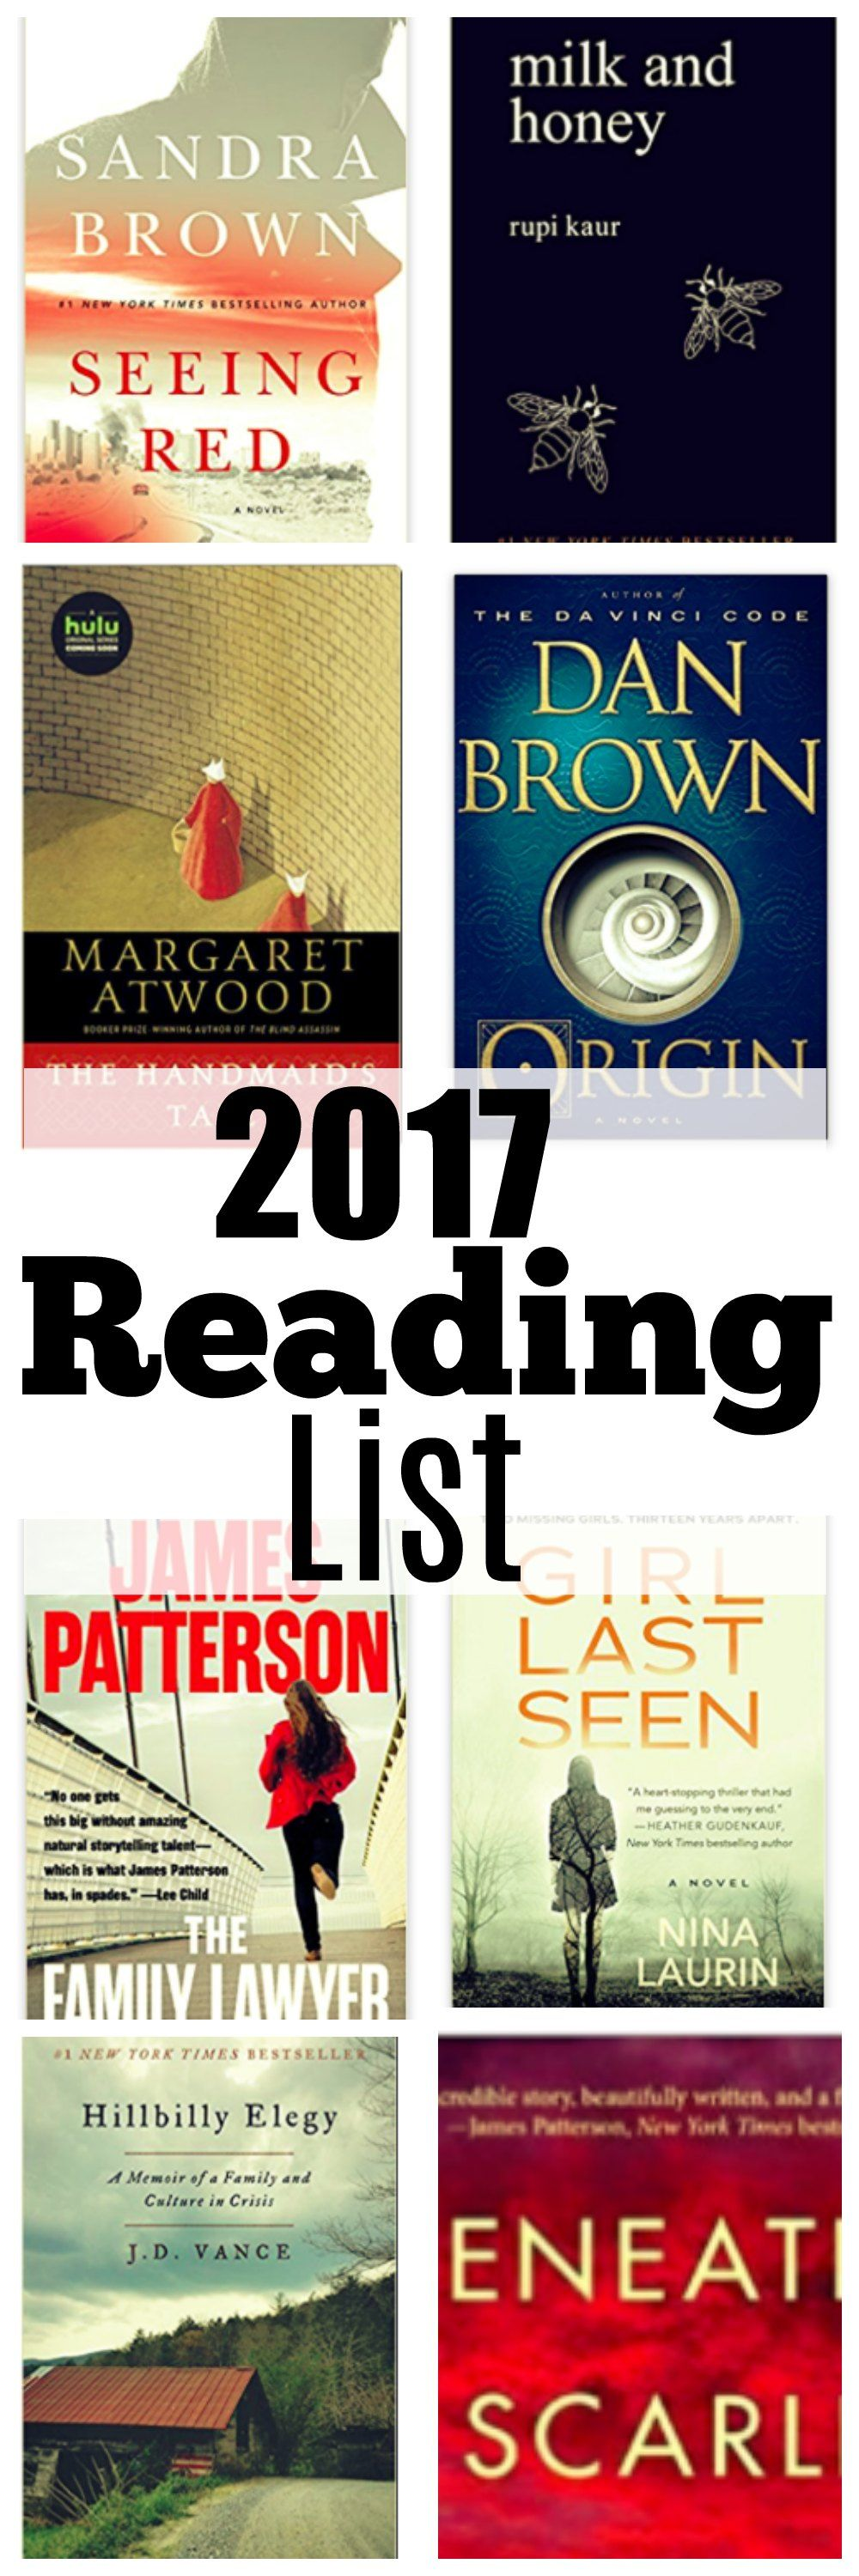 2017 Reading List Book Reviews Happily Hughes Book Club Books Book Worth Reading Top Fiction Books